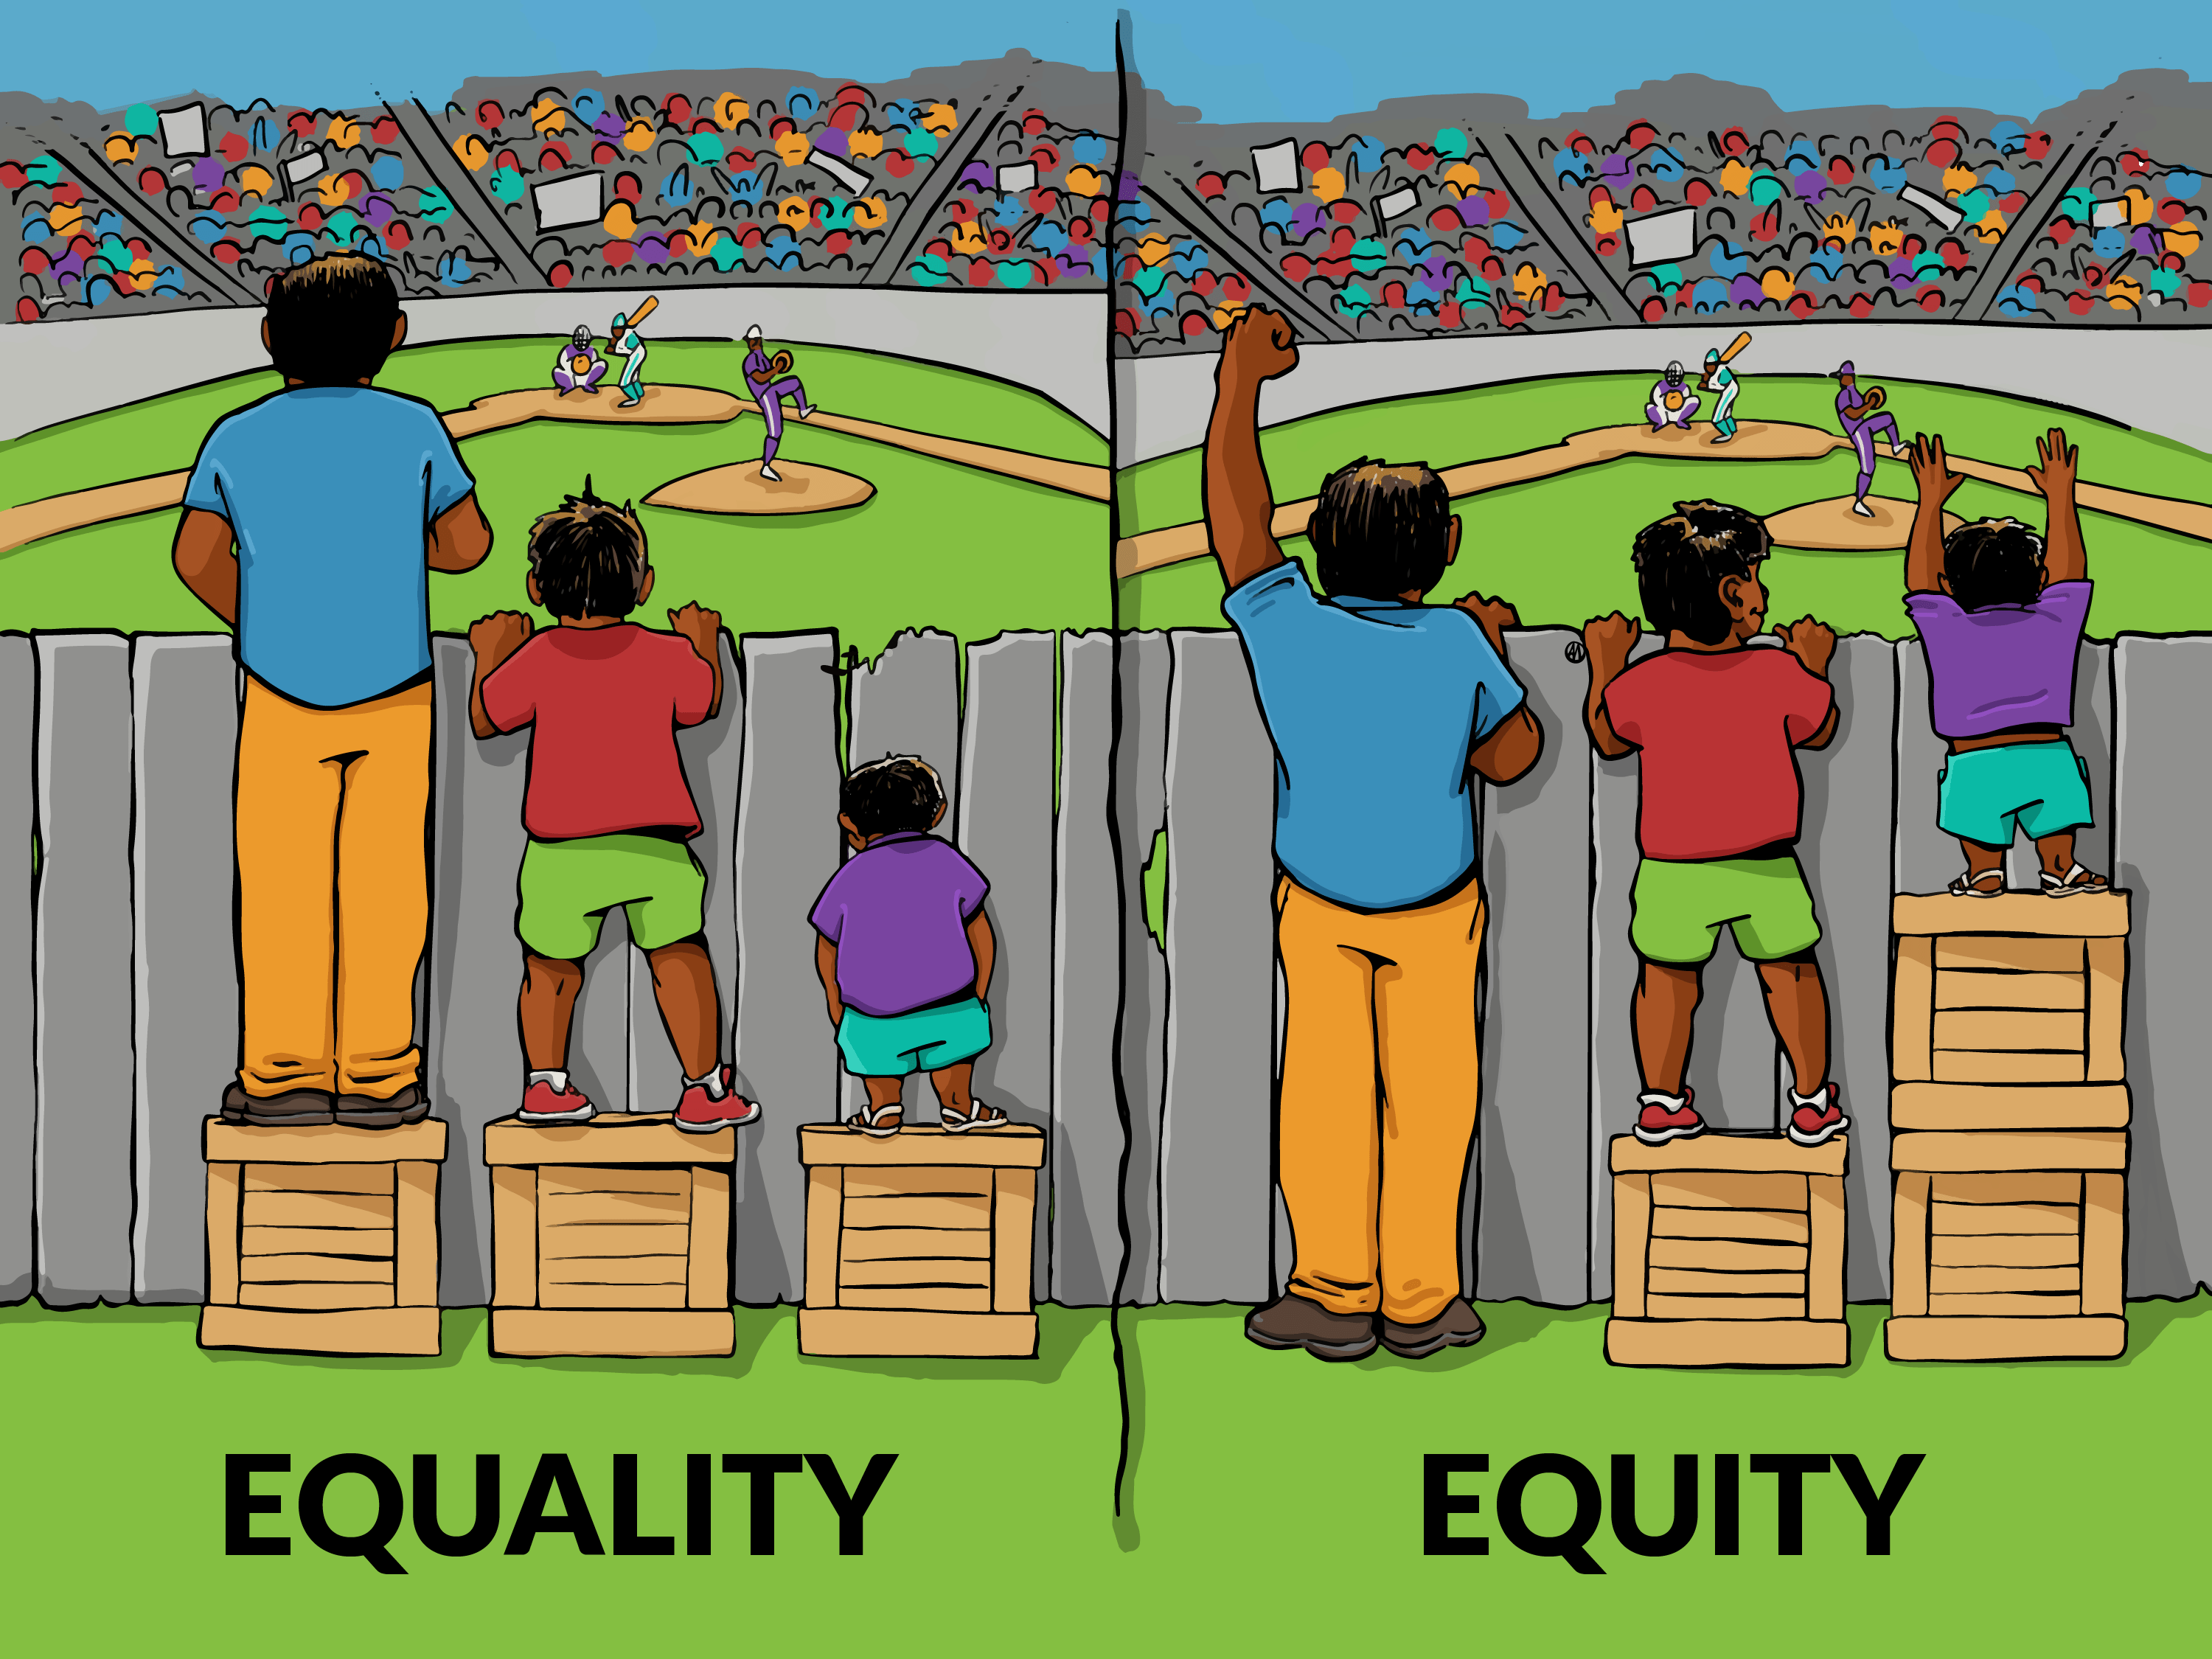 Equality is giving everyone a box, but equity is giving everyone exactly what they need to see the game. (Image credit: Interaction Institute for Social Change, illustrated by Angus Maguire